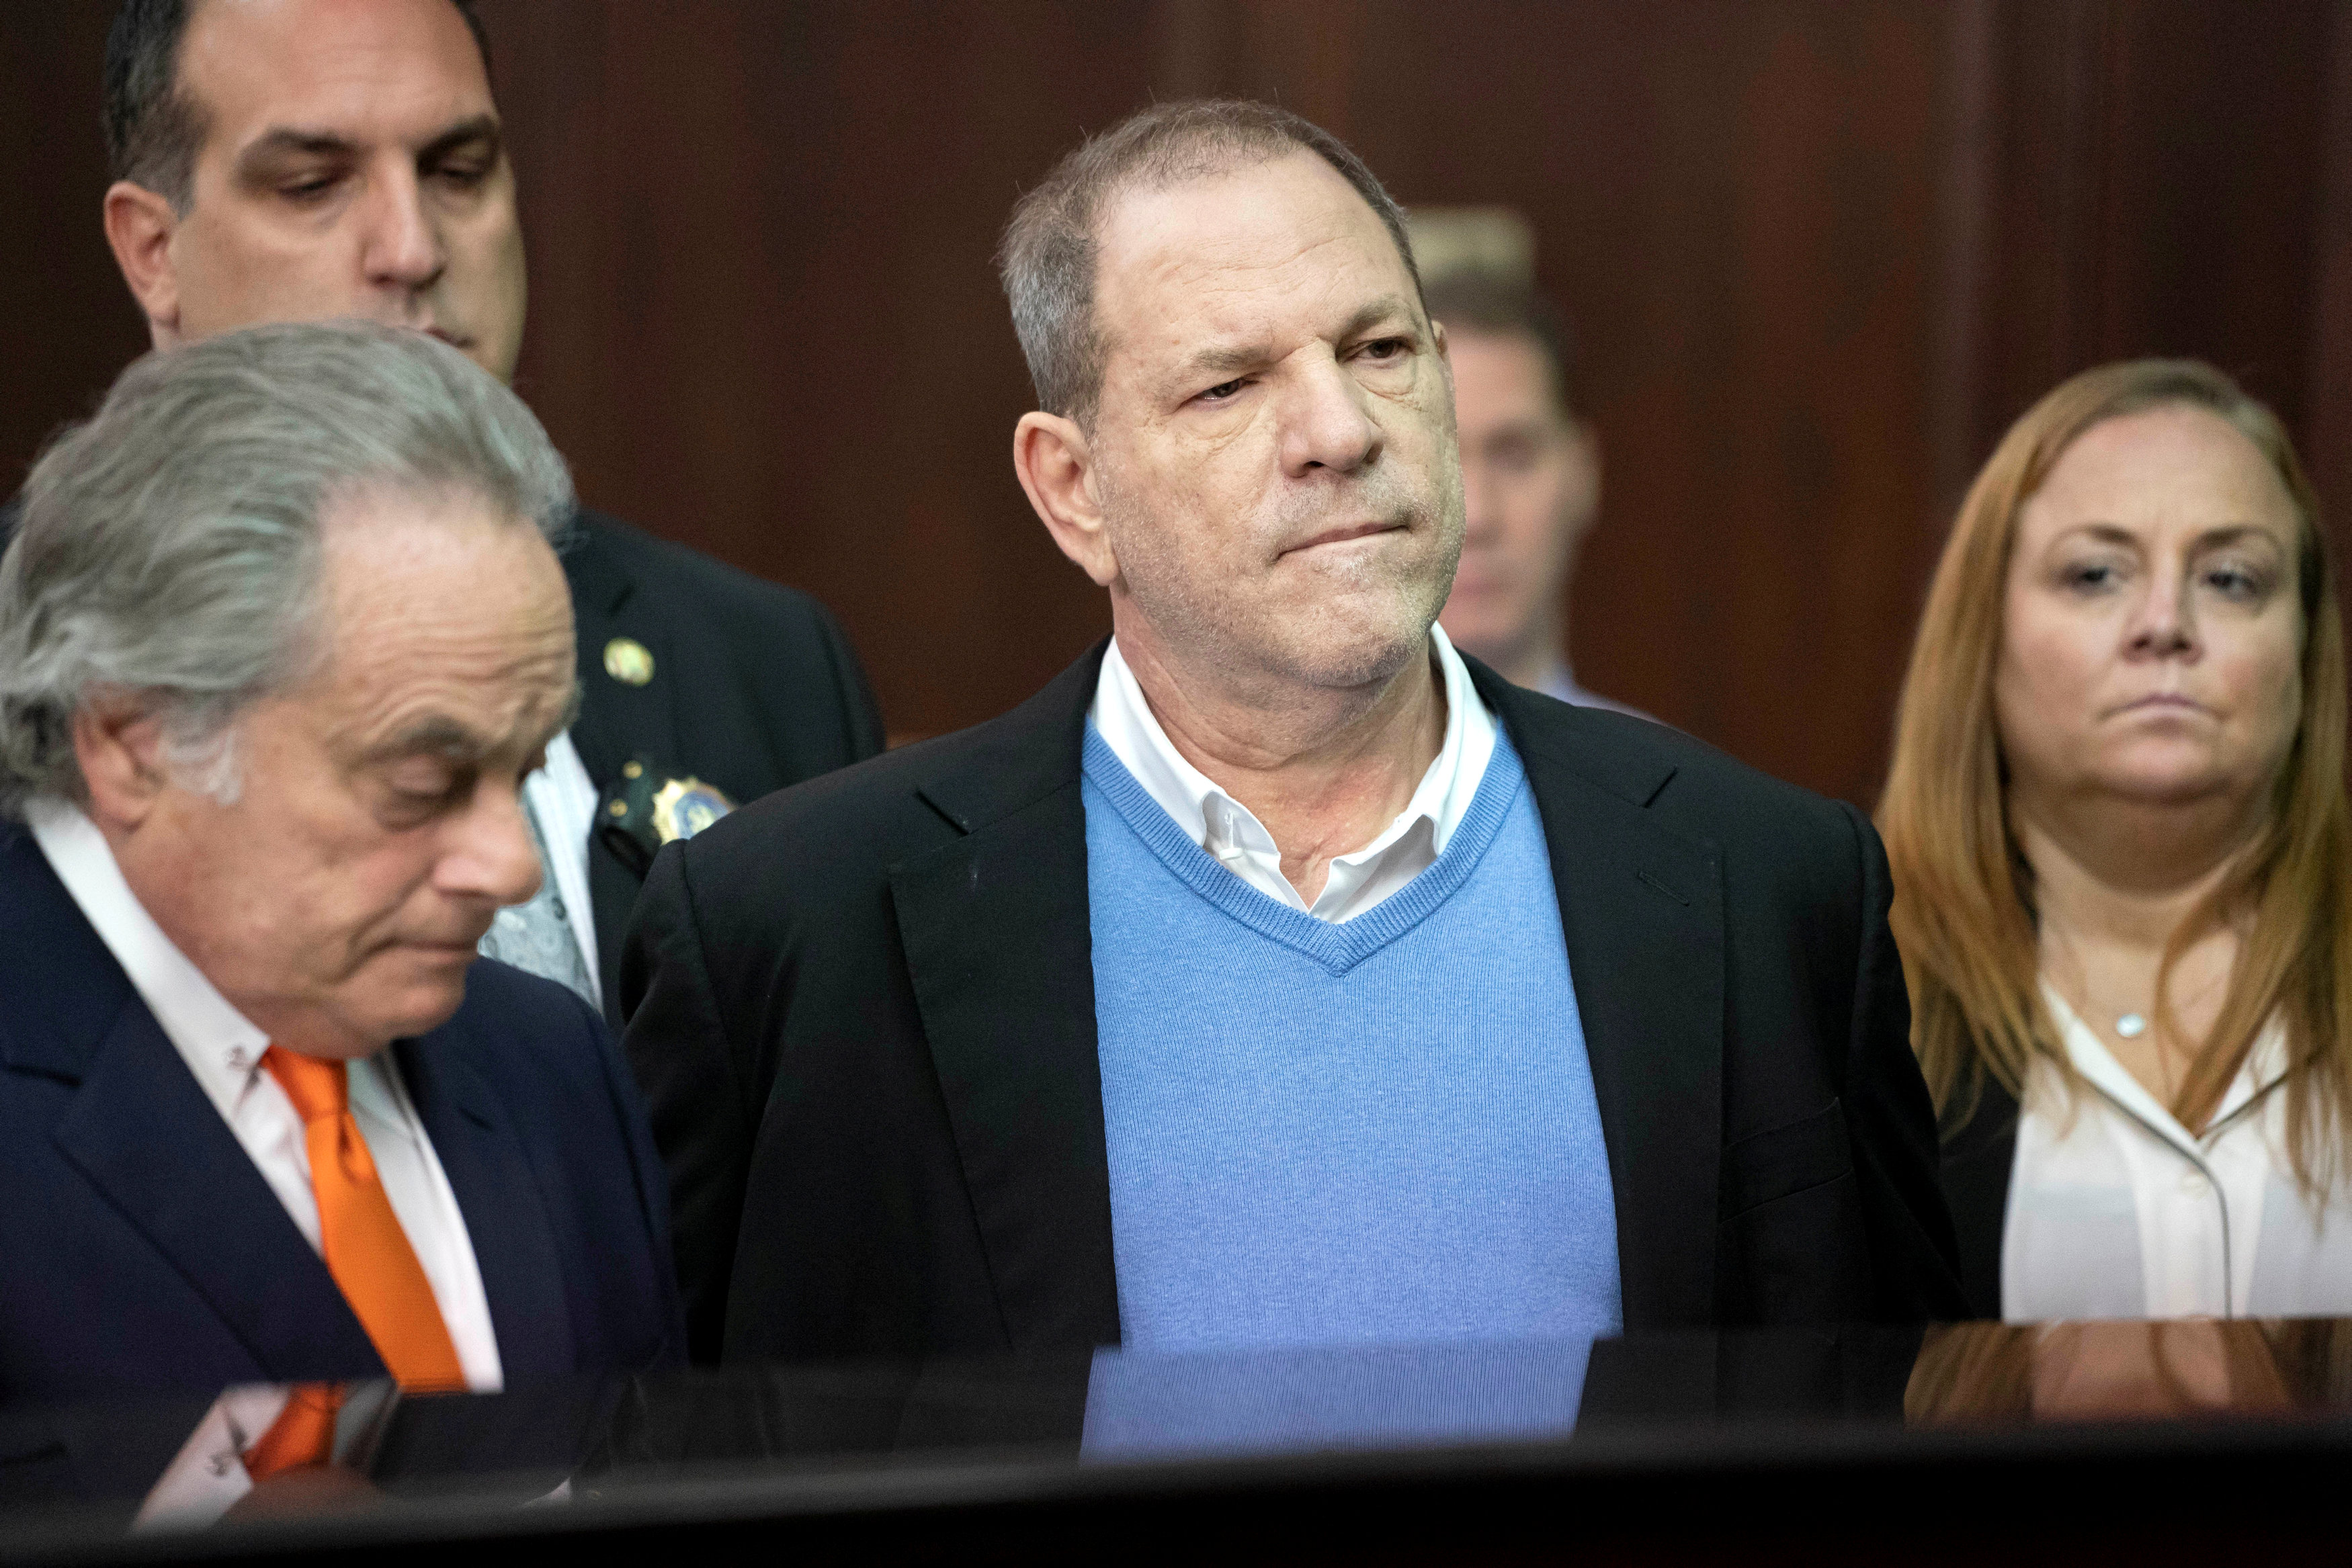 Harvey Weinstein (centre)  has been accused of sexual misconduct by more than 70 women. He has...